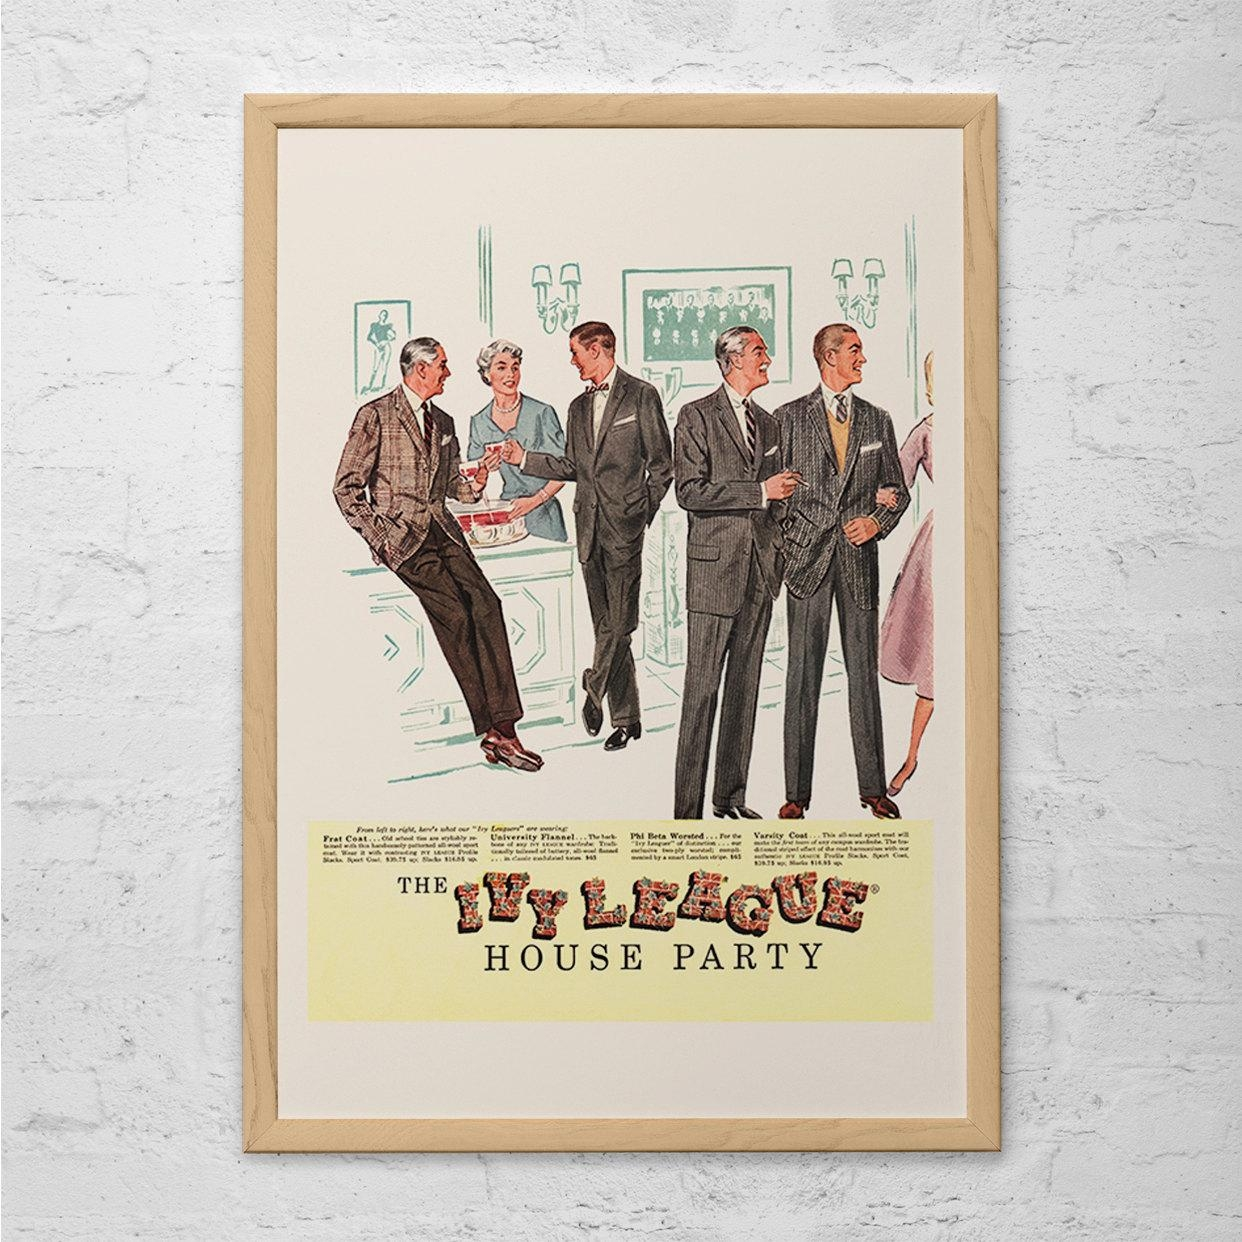 Ivy League Fashion Ad Retro Mad Men Ad Mid Century Poster Inside Mad Men Wall Art (Image 5 of 20)